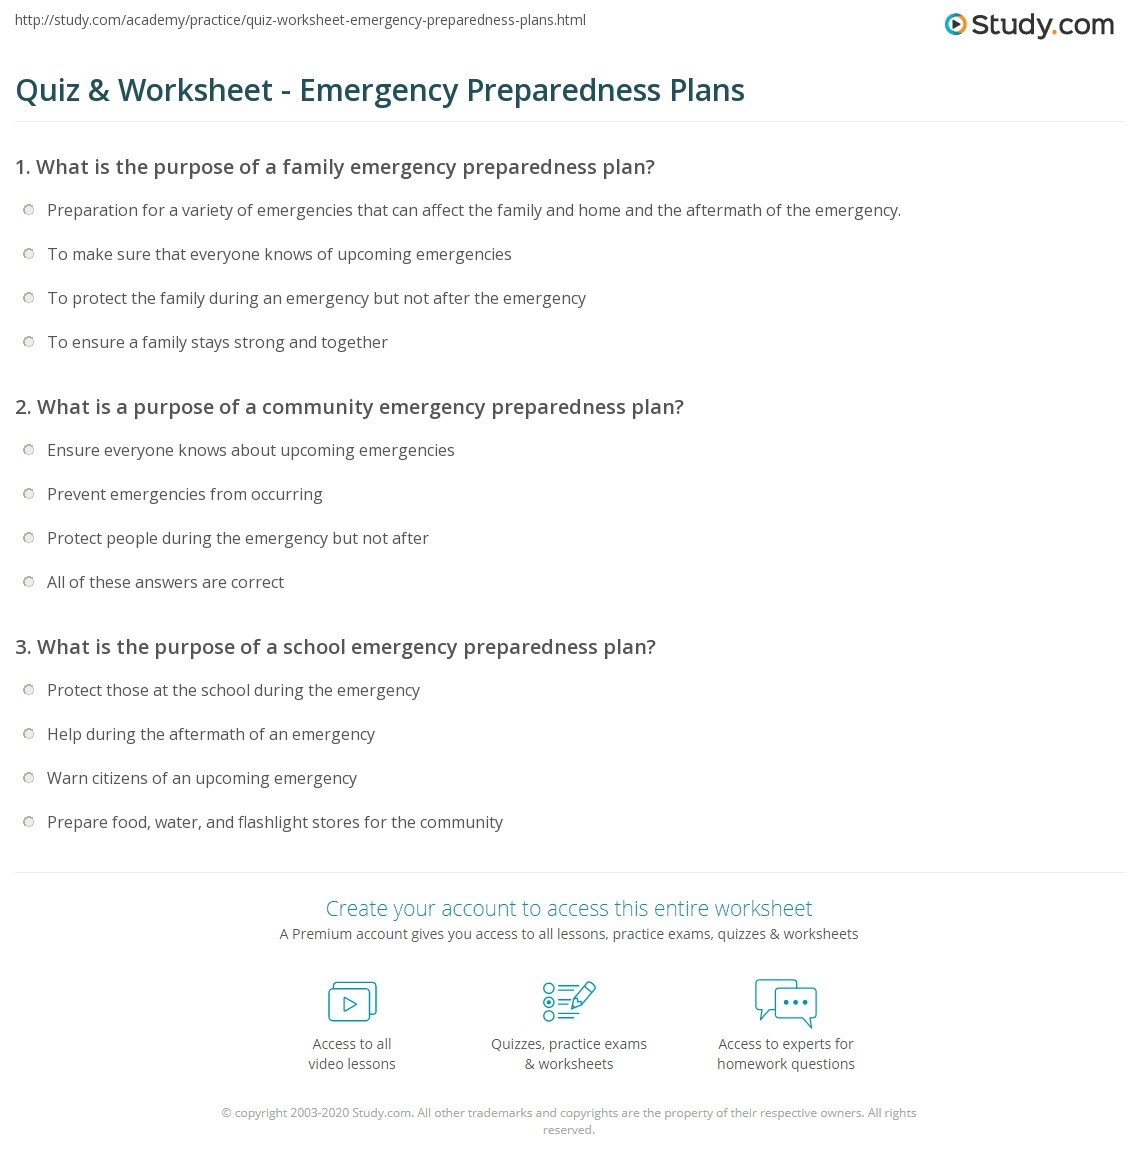 worksheet Emergency Preparedness Worksheet quiz worksheet emergency preparedness plans study com print purpose function worksheet